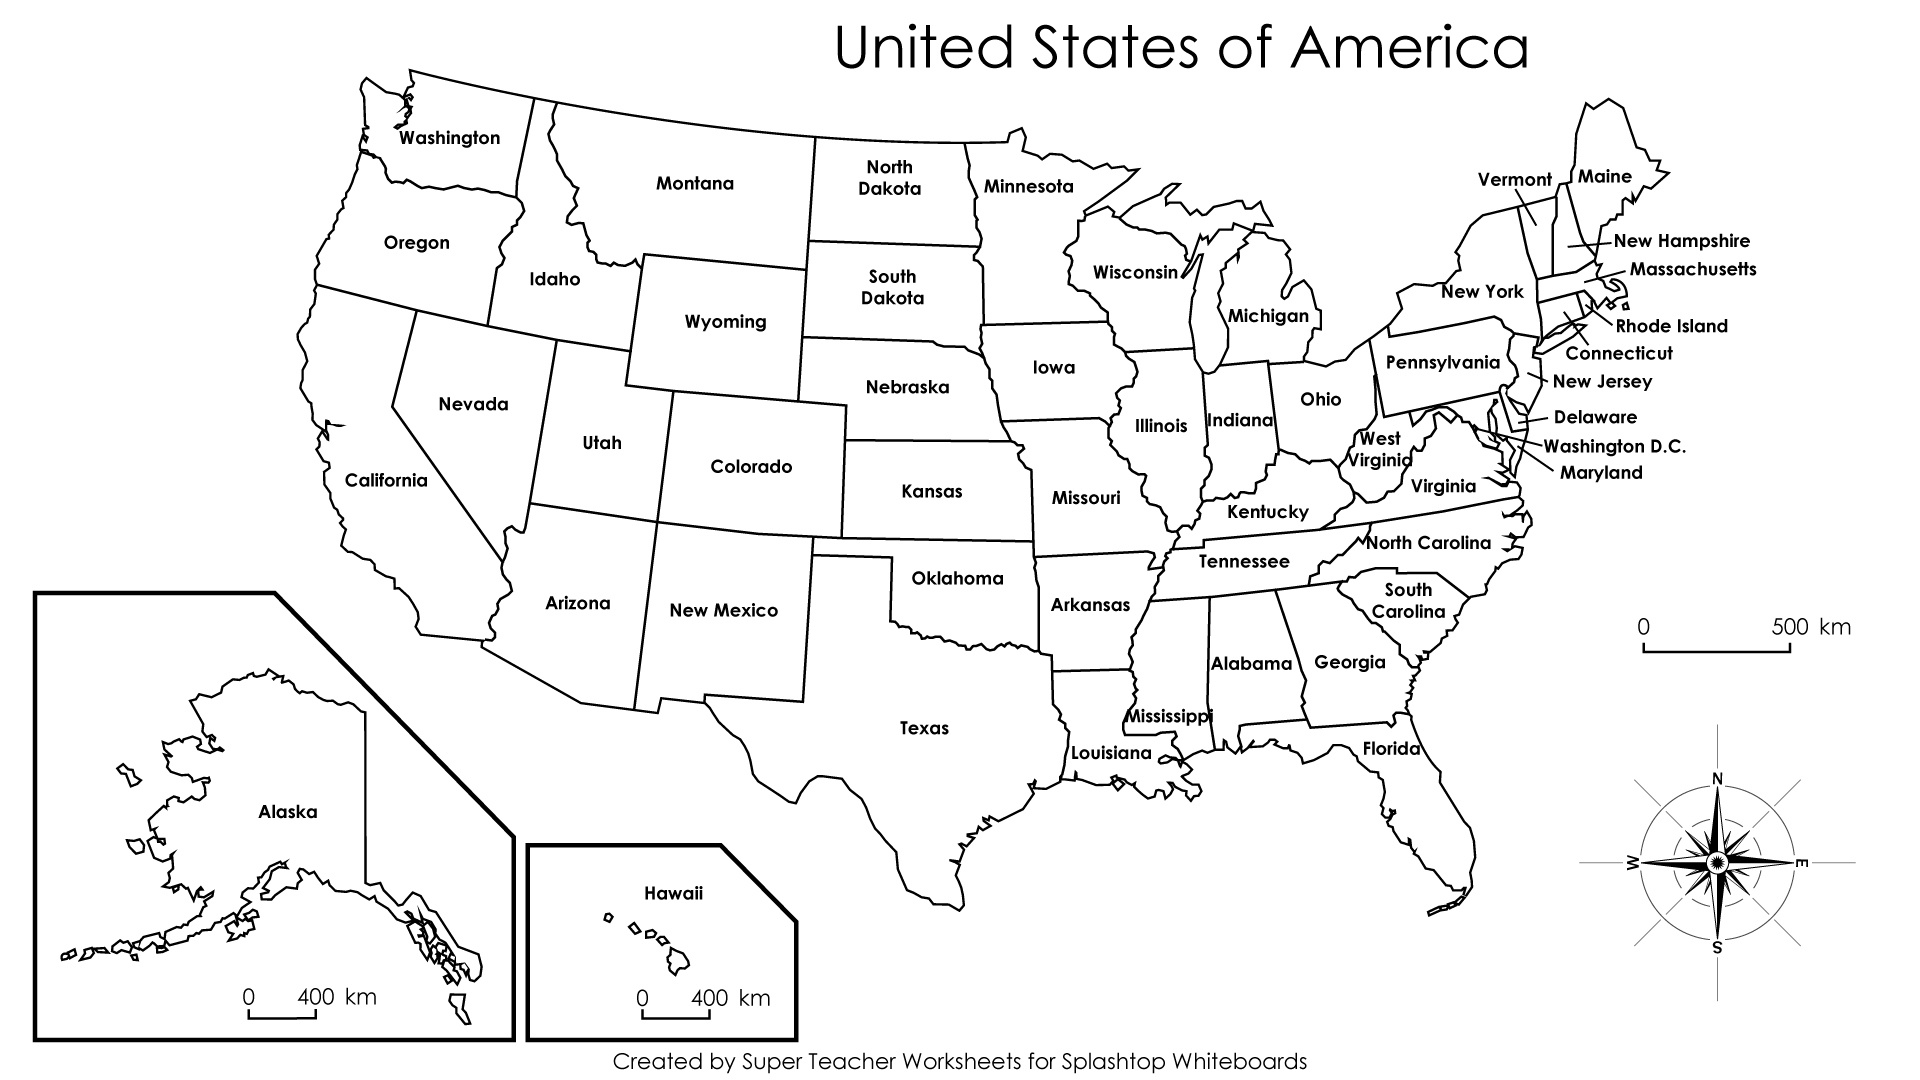 Free Printable Us Maps With State Names Usa Map And State Capitals - Free Printable Map Of United States With States Labeled